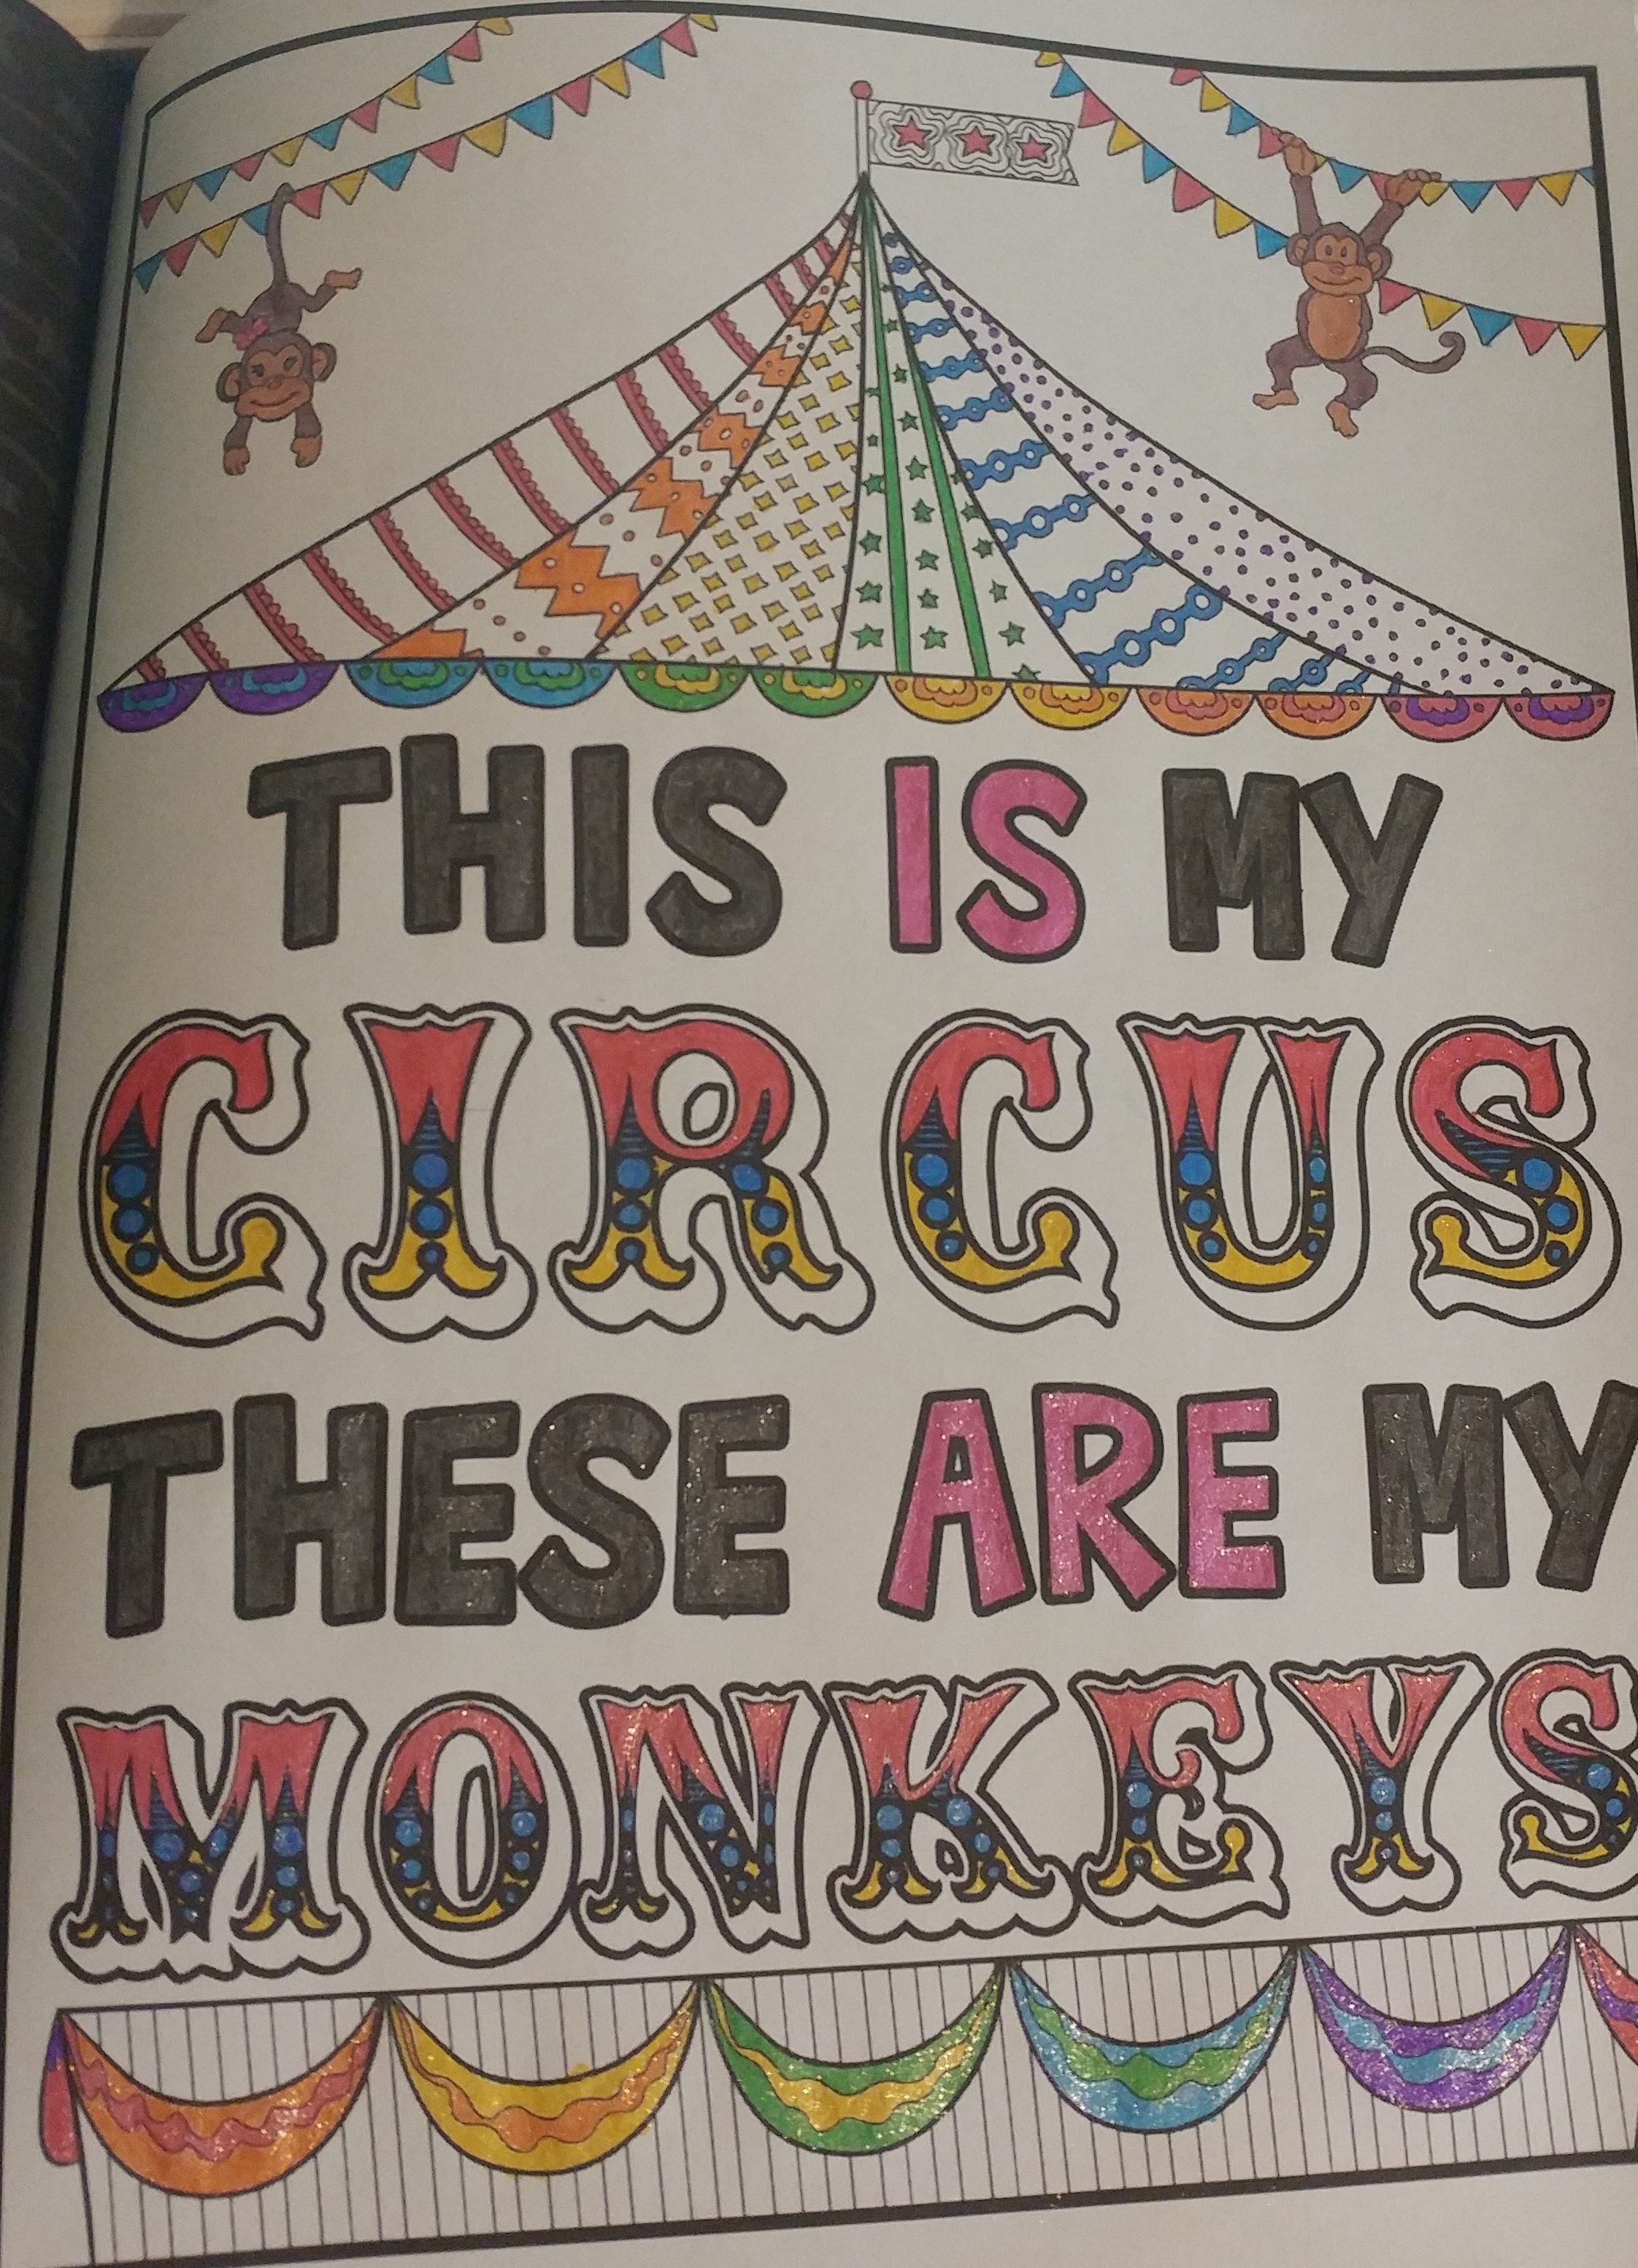 Adult coloring books for irreverent moms dads and other humans adult coloringcoloring booksfunny thingsmonkeysdads this is my circus these